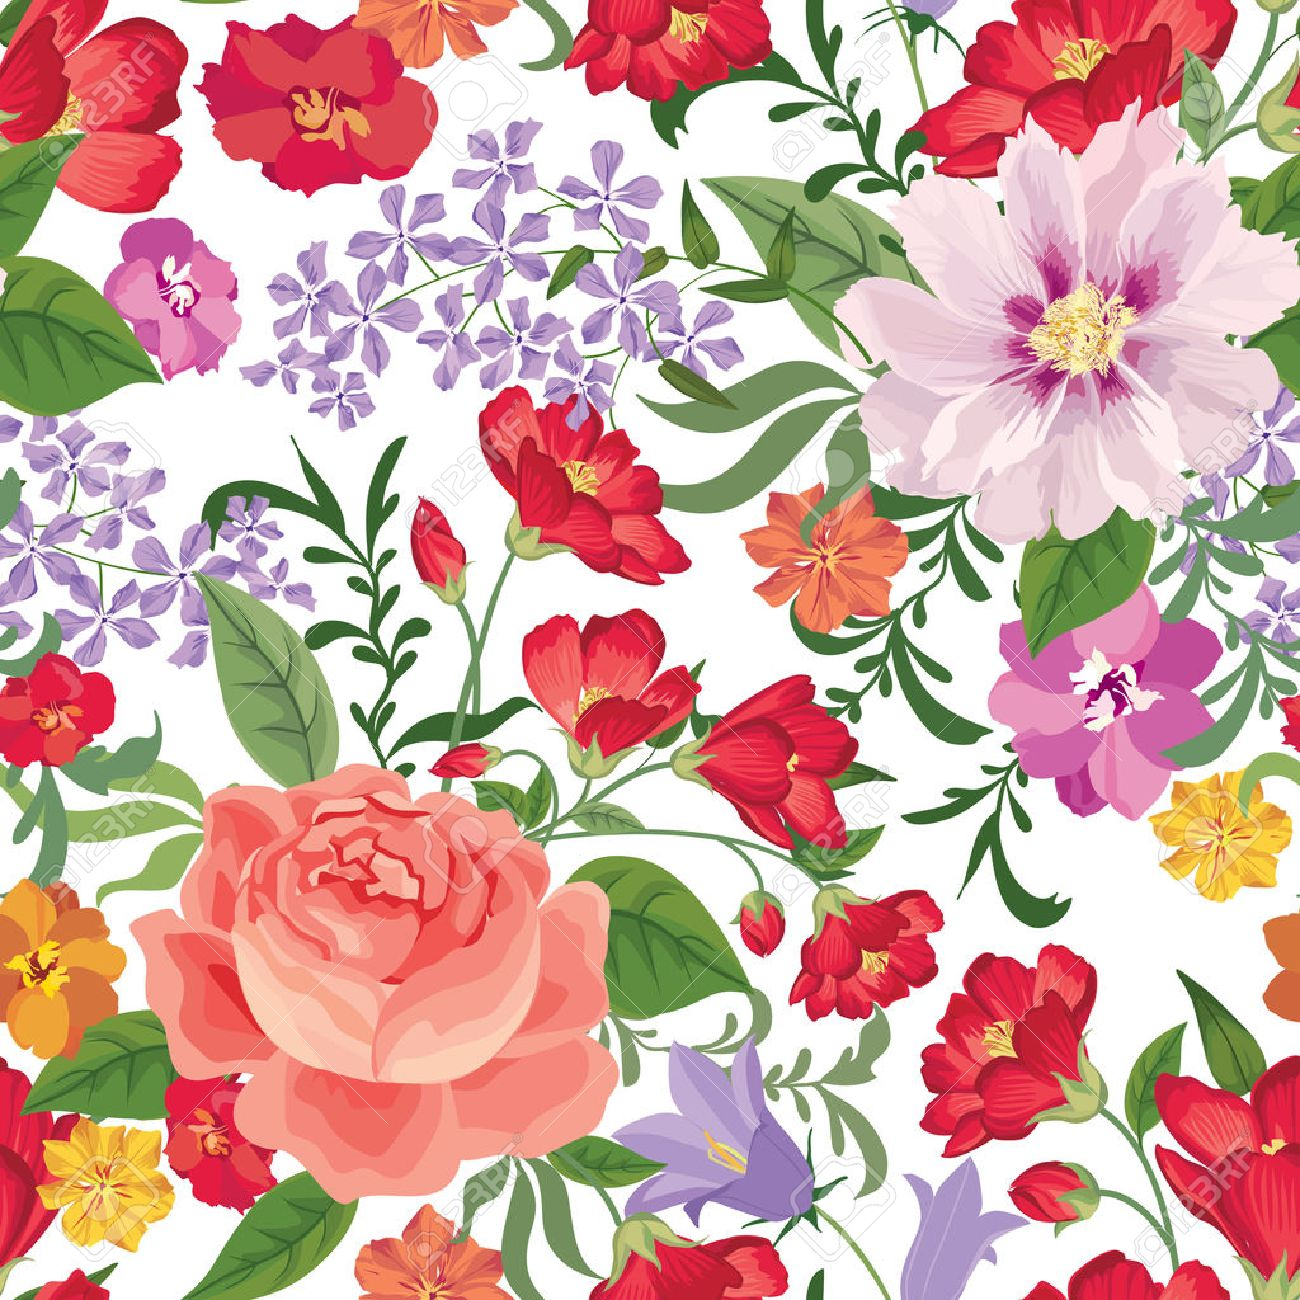 Floral Seamless Pattern Flower Background Texture With Flowers Flourish Tiled Wallpaper